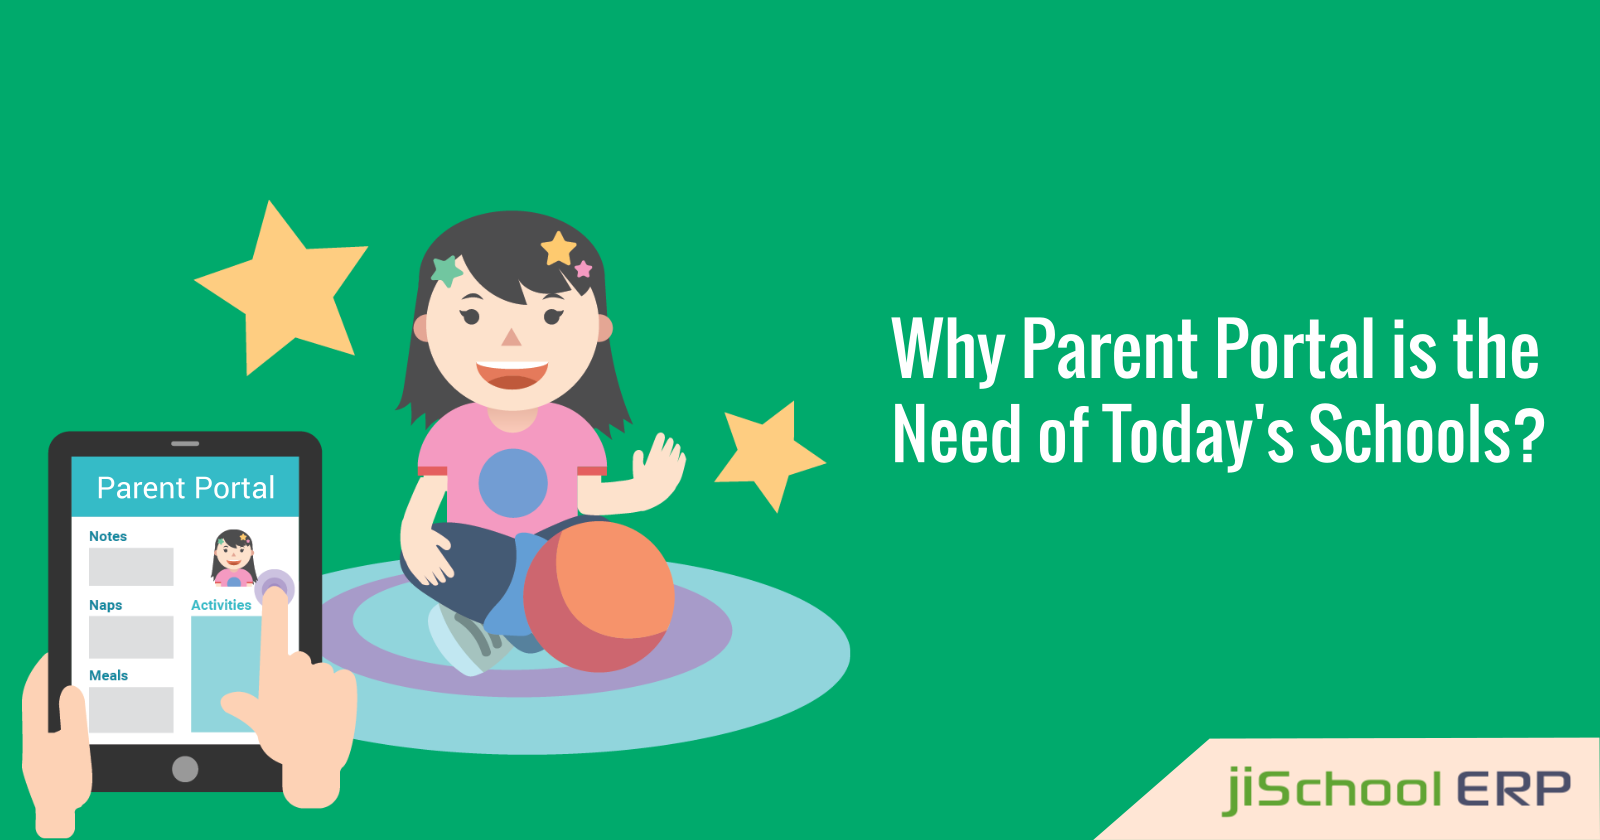 Why Parent Portal is the Need of Today's Schools?